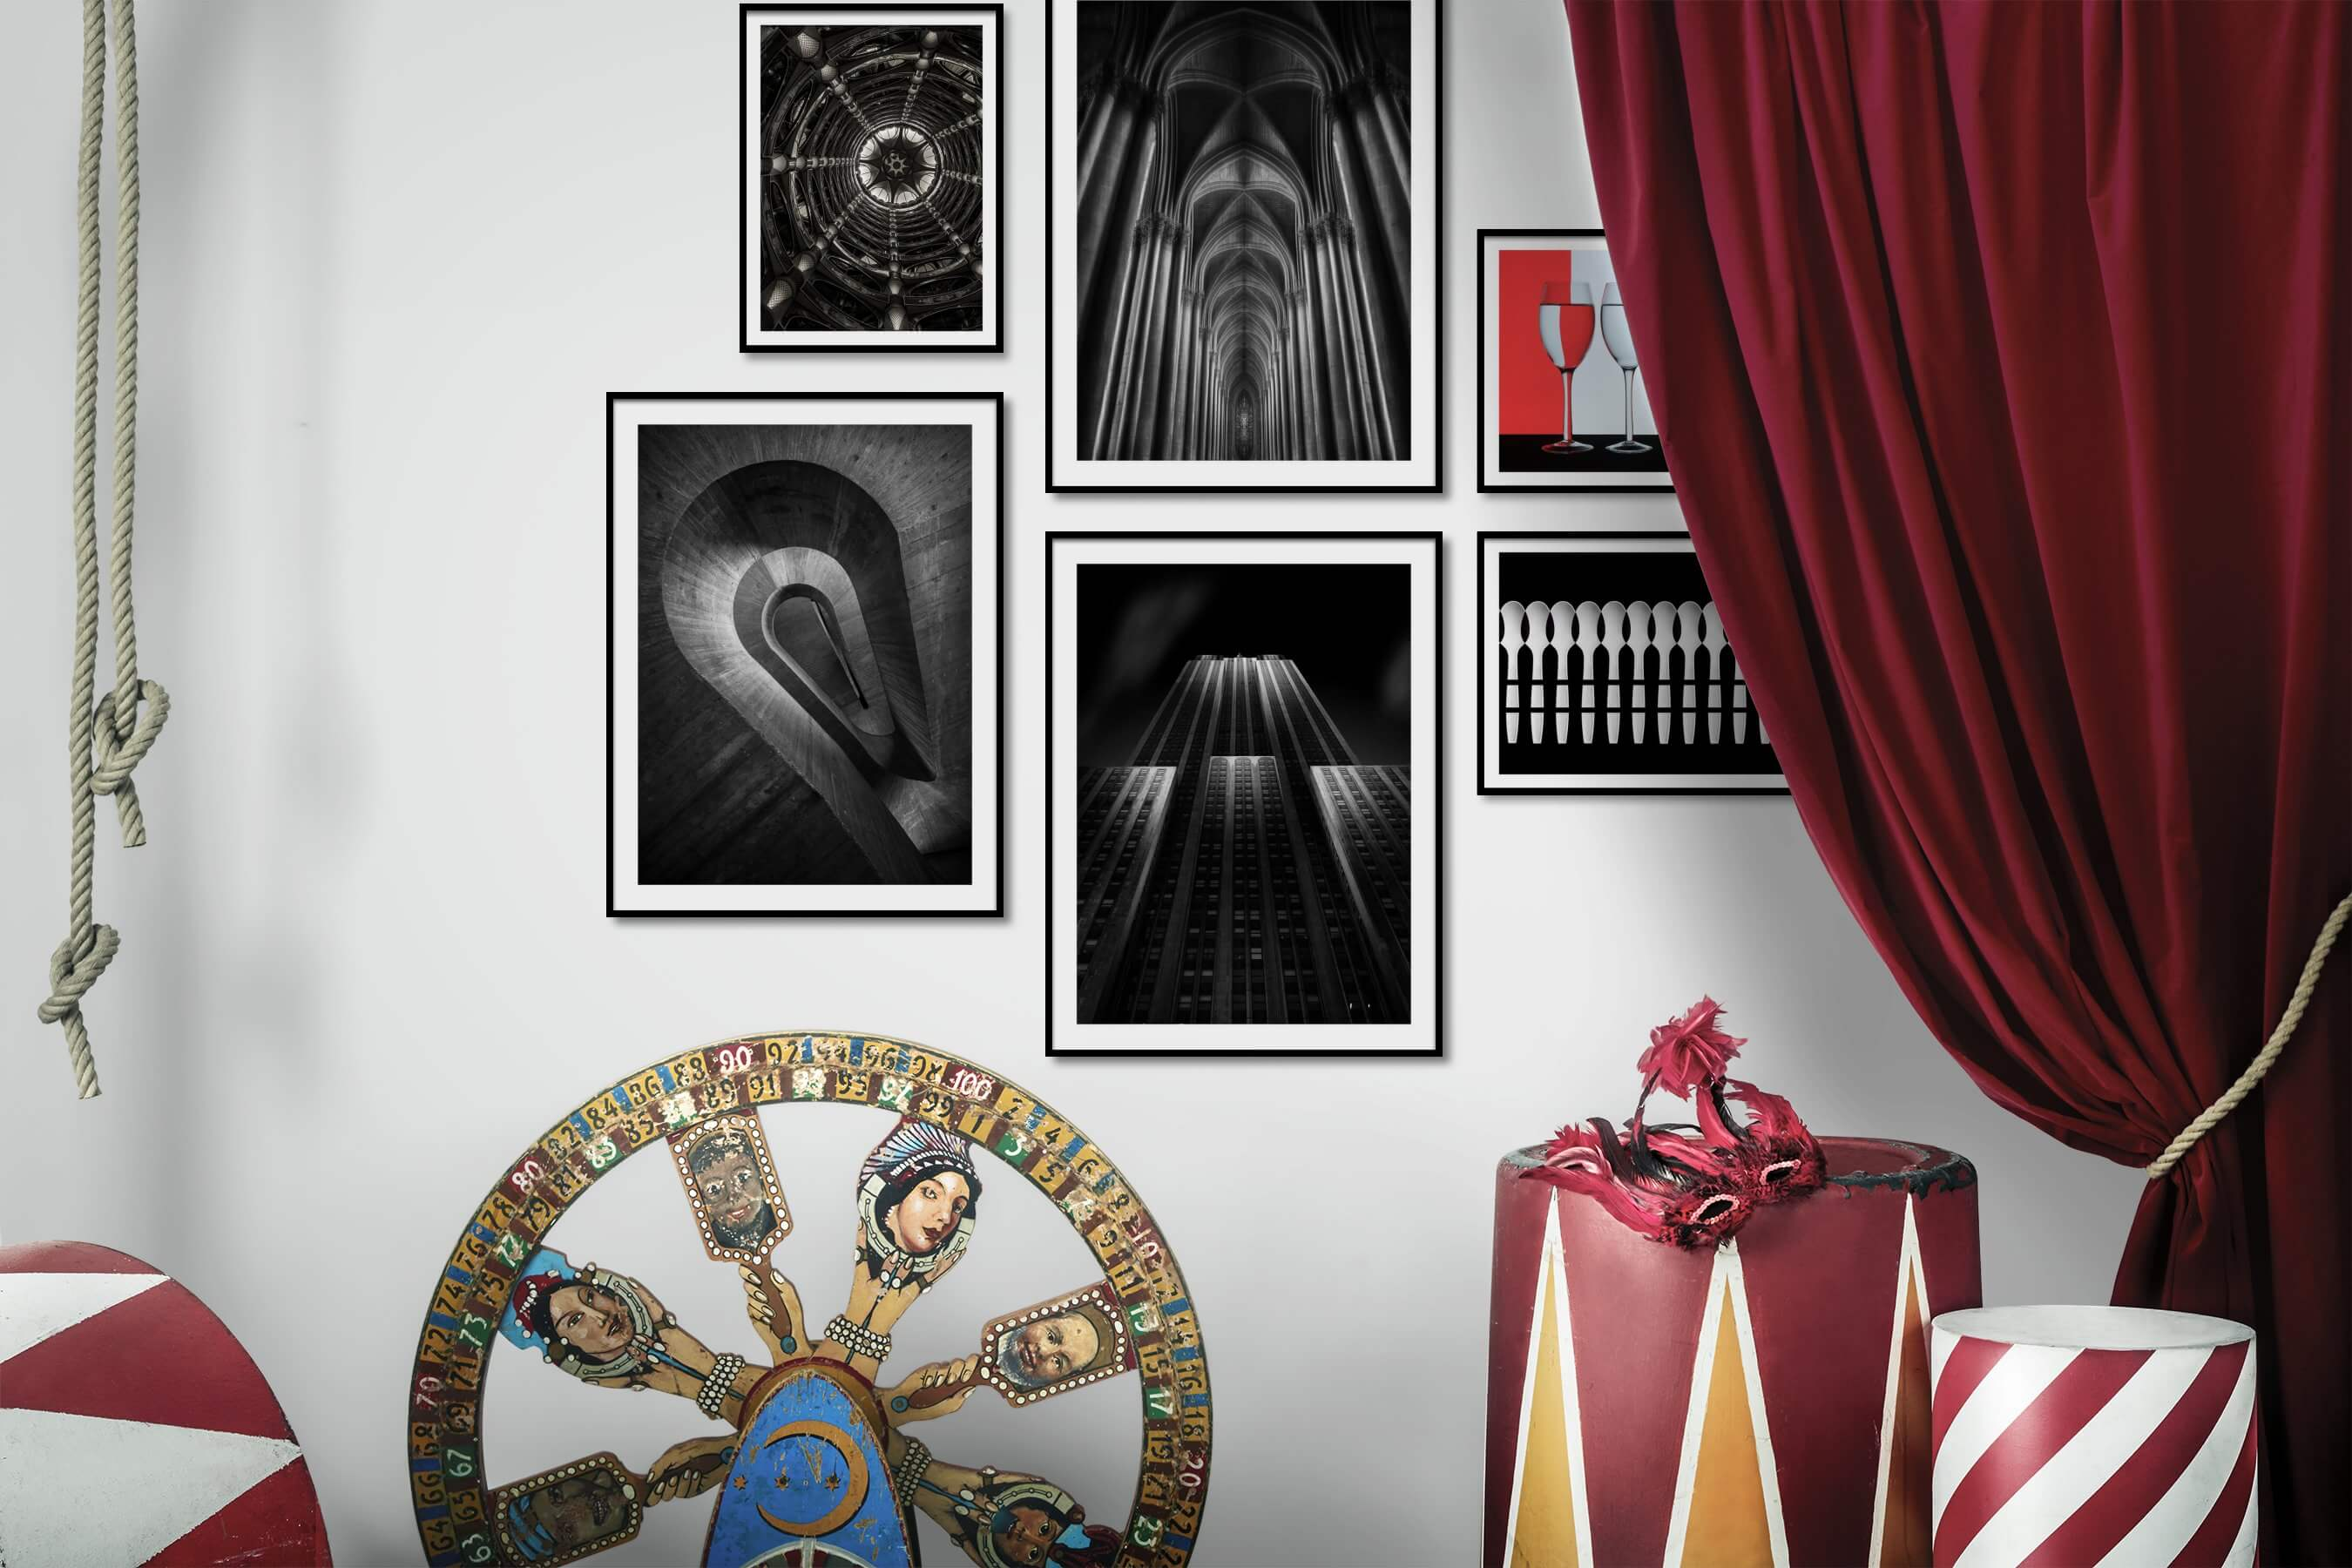 Gallery wall idea with six framed pictures arranged on a wall depicting For the Maximalist, Black & White, For the Moderate, City Life, Americana, and For the Minimalist